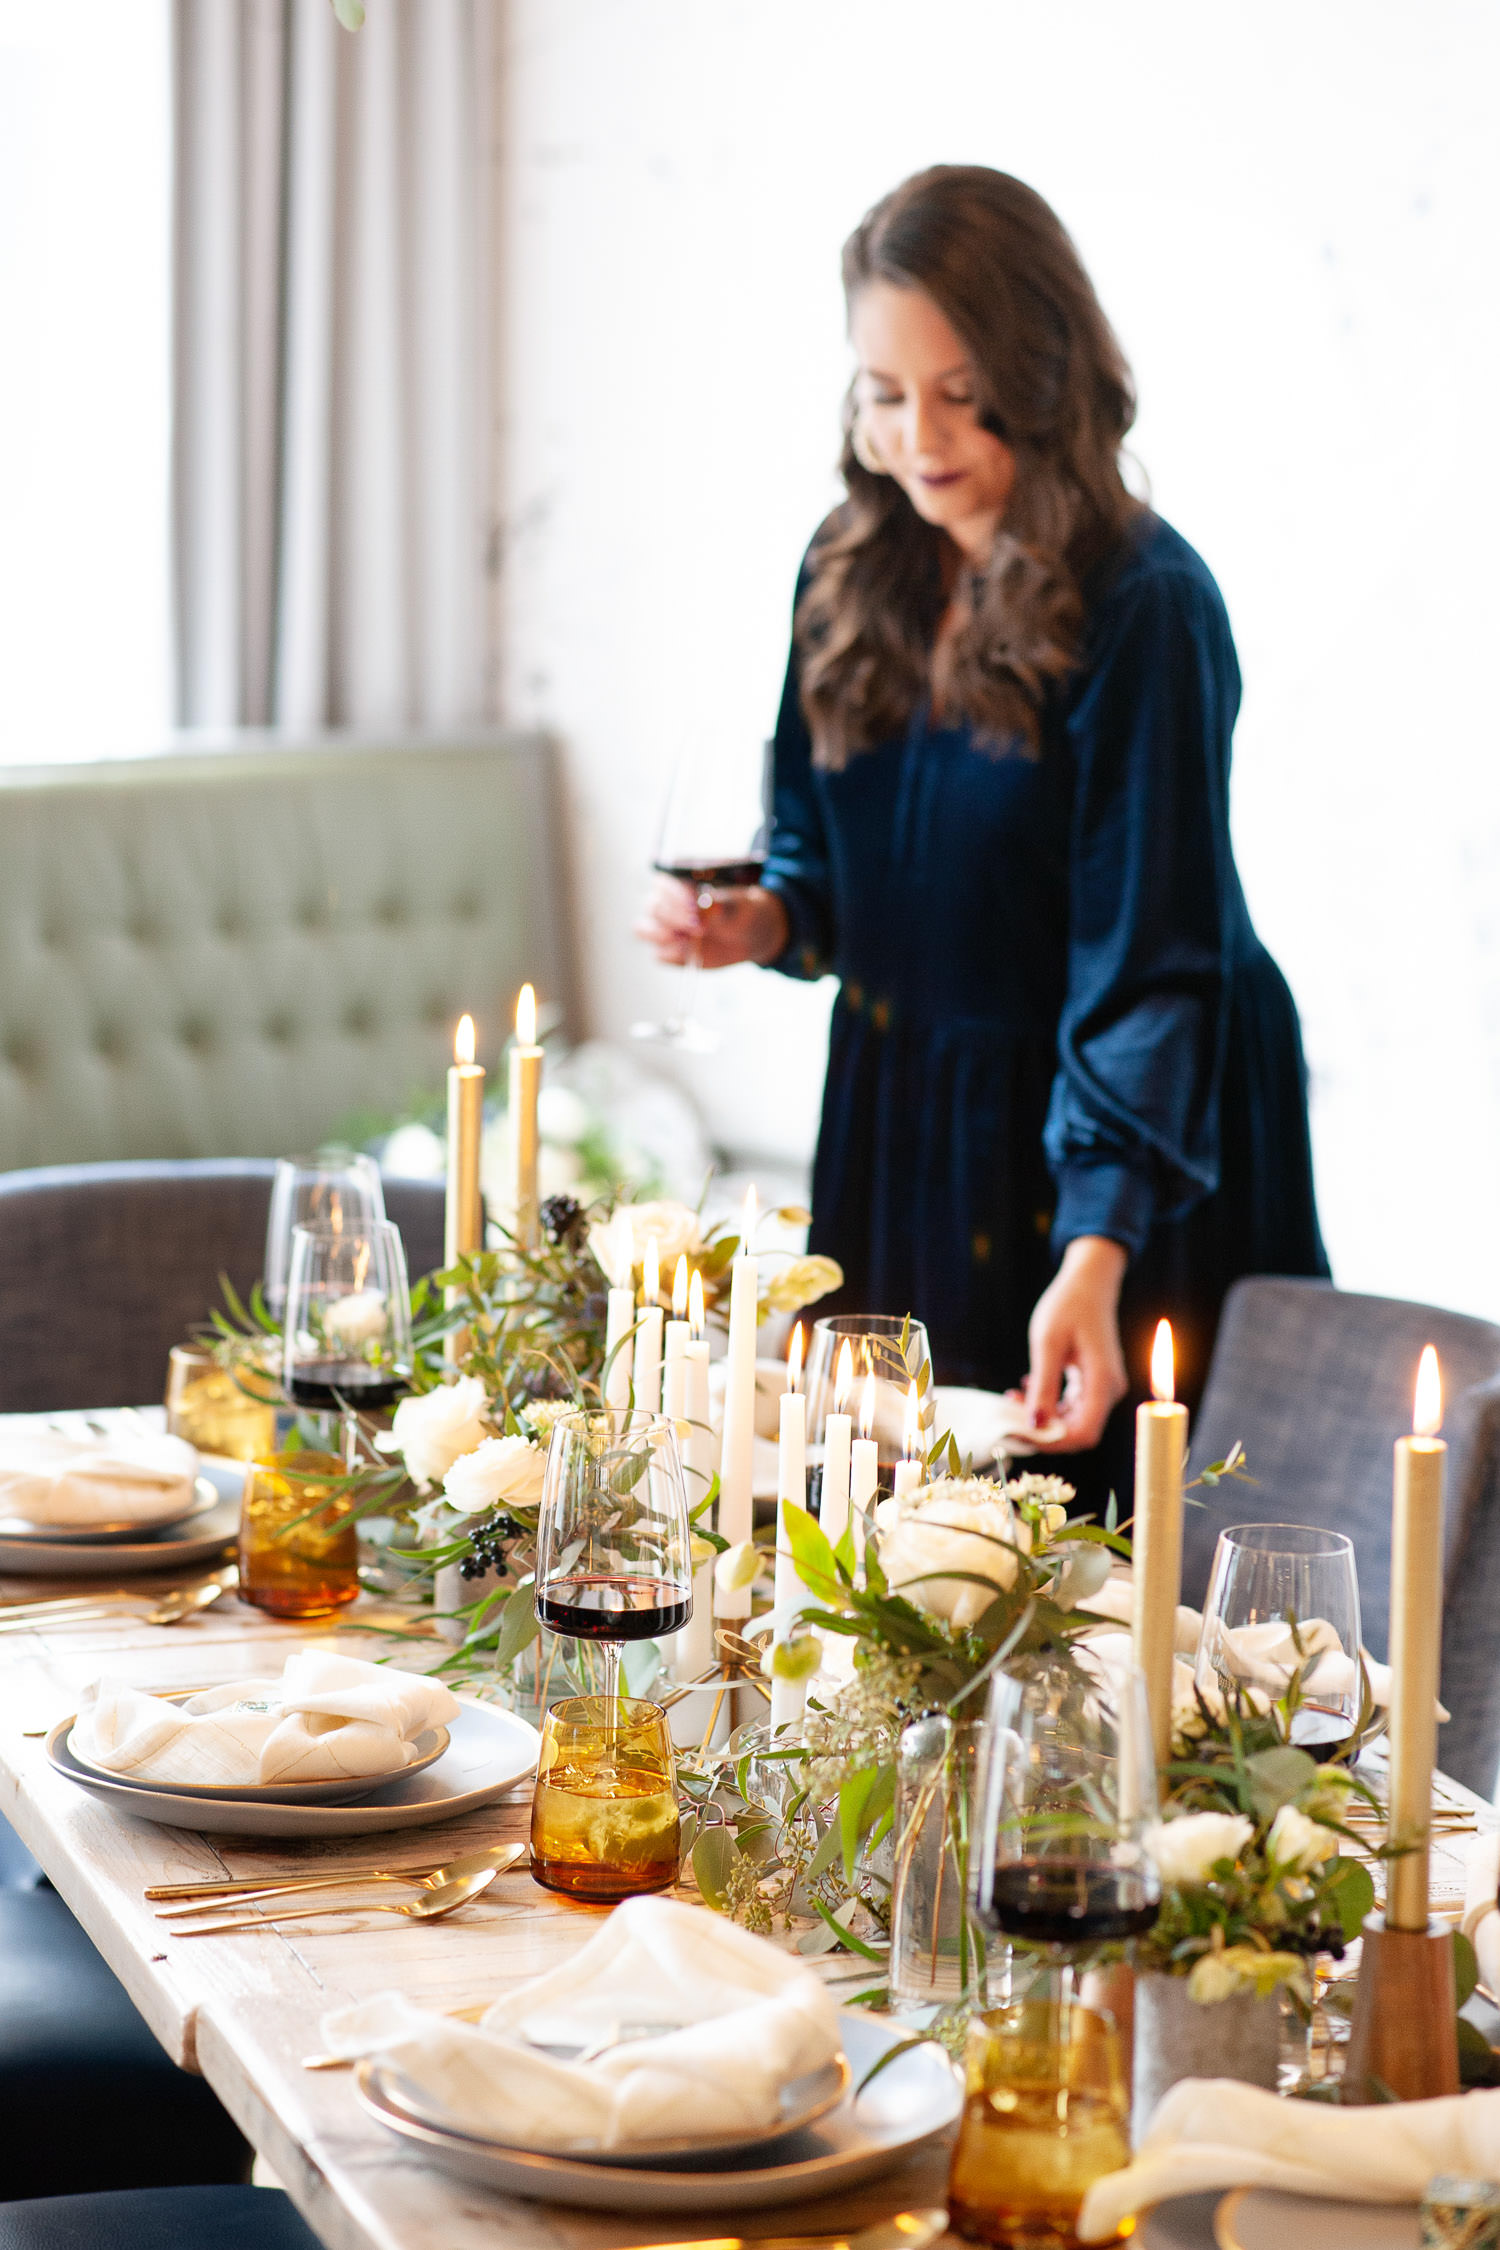 Evelyn from 206 Event Co. styles Hanukkah table captured by Calgary wedding photographer Tara Whittaker